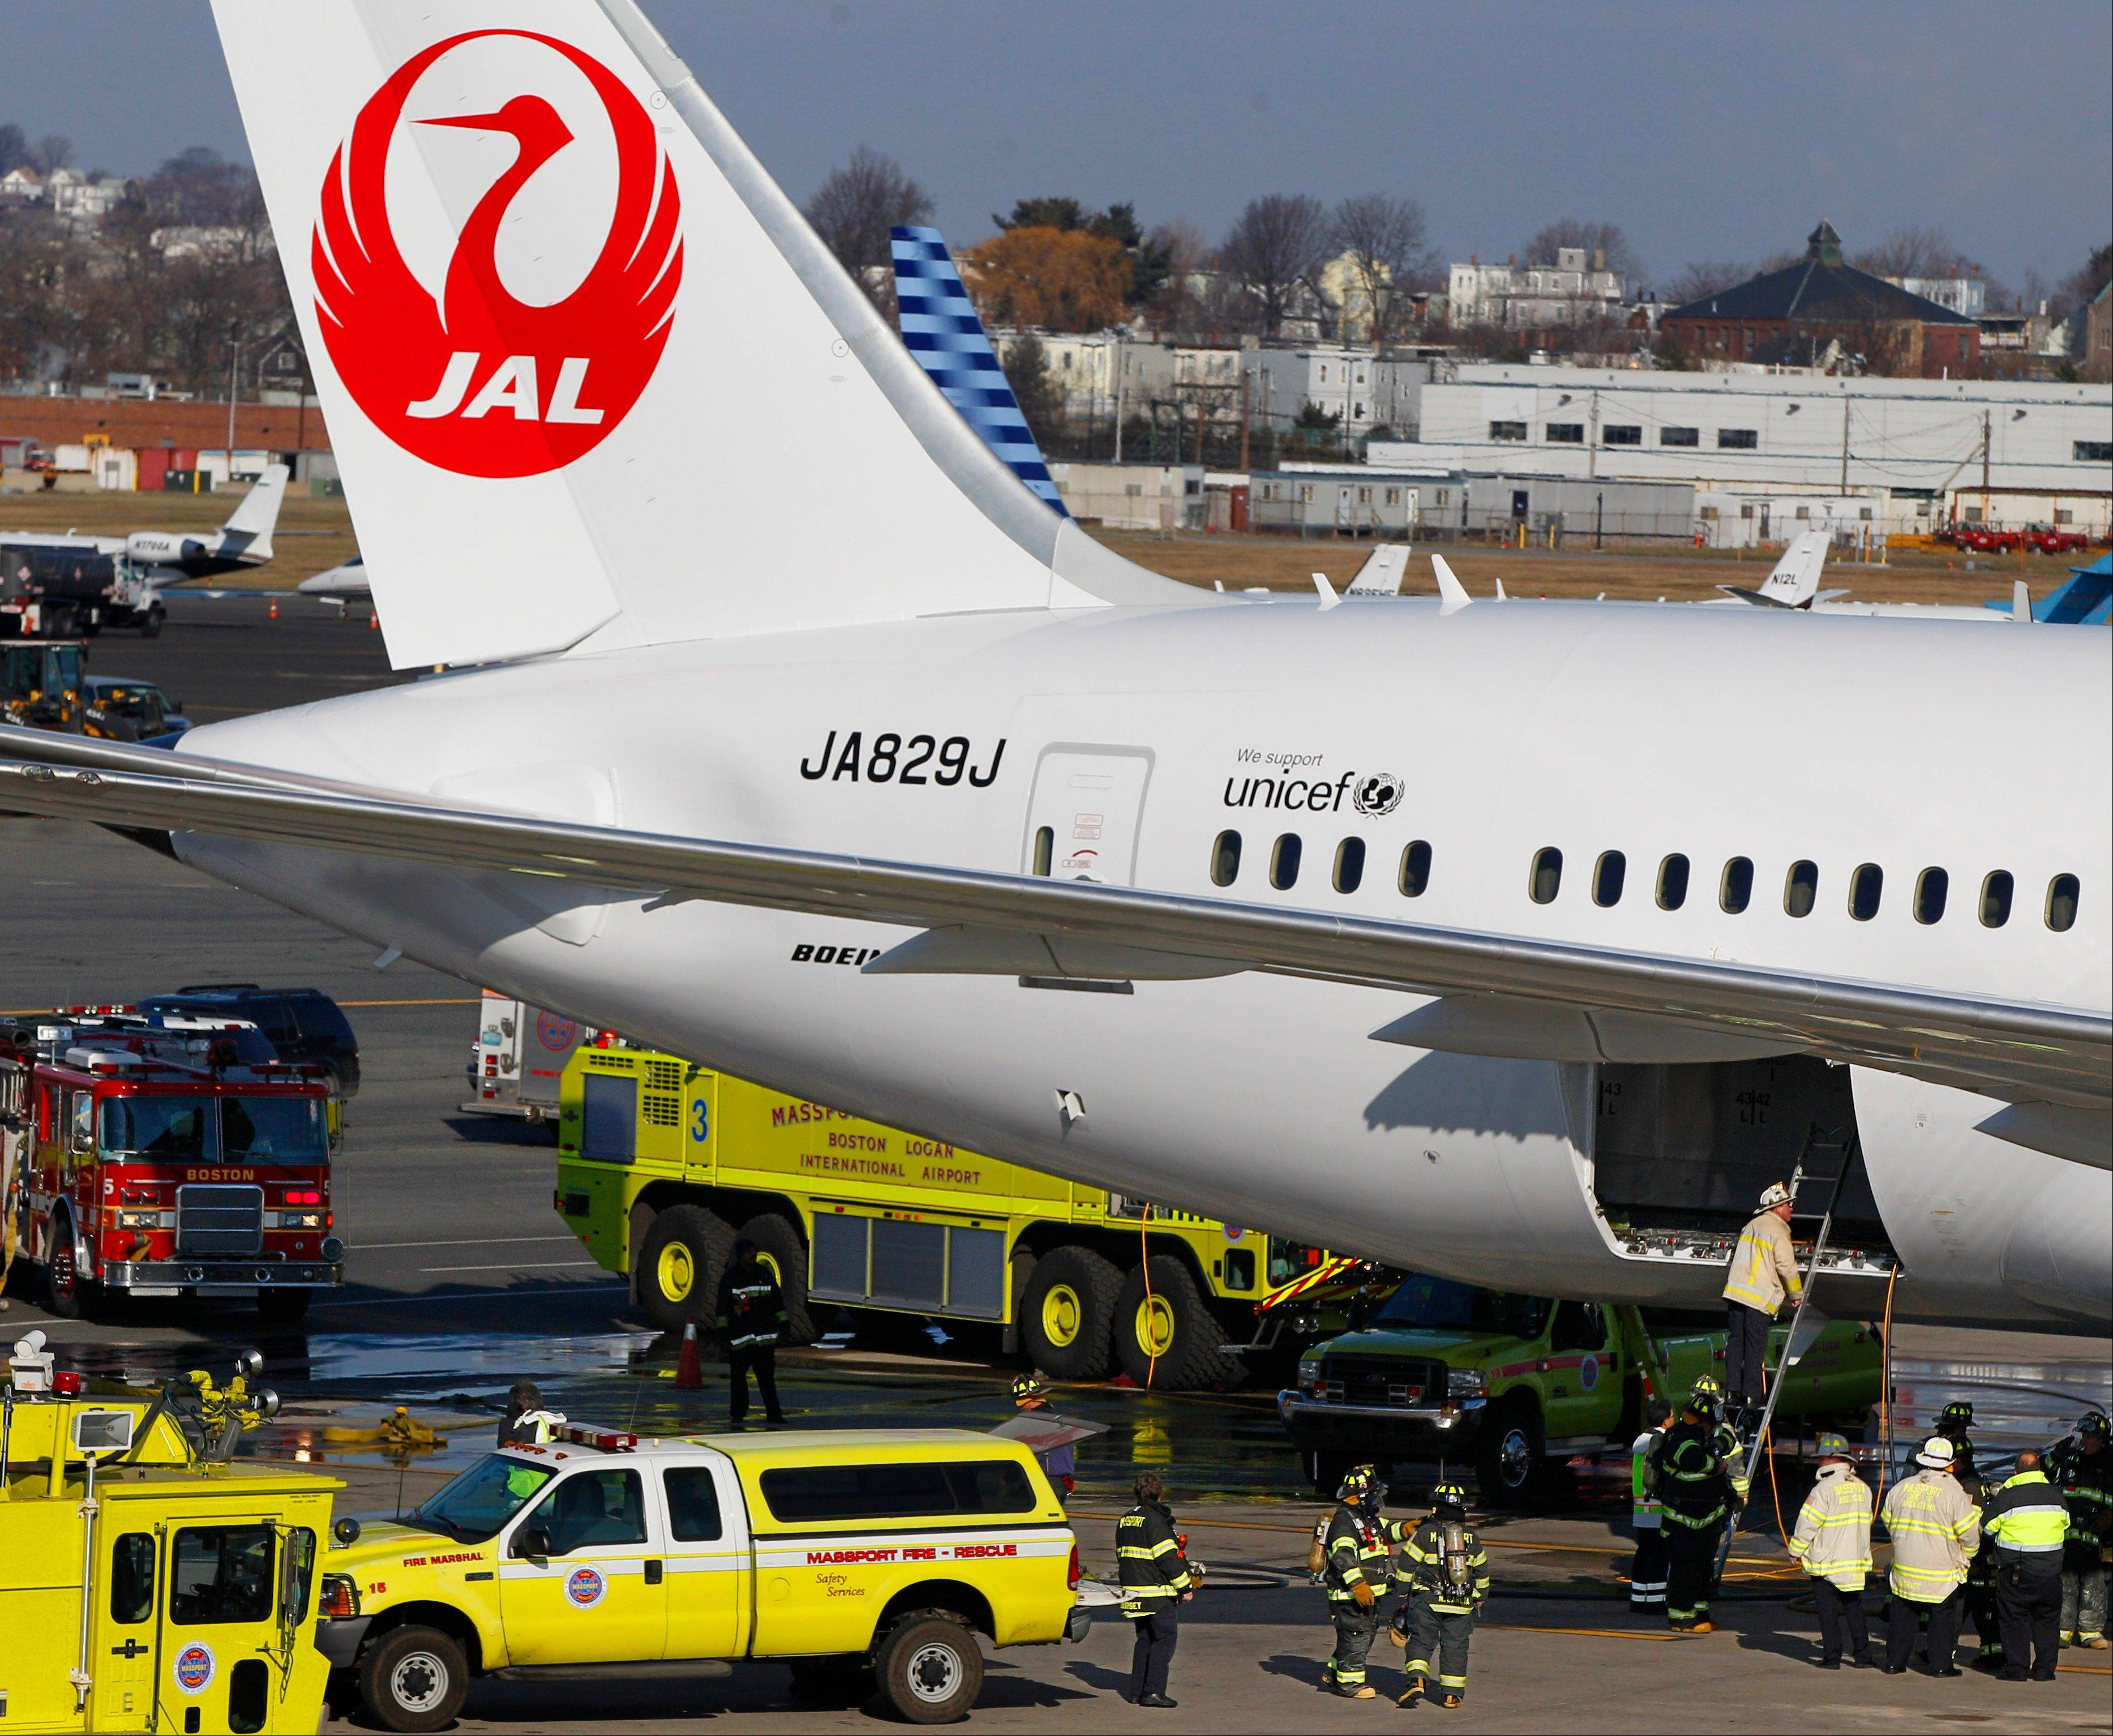 FILE - In this Jan. 7, 2013, file photo, a Japan Airlines Boeing 787 jet aircraft is surrounded by emergency vehicles while parked at a terminal E gate at Logan International Airport in Boston as a fire chief looks into the cargo hold. Federal regulators have approved a Boeing plan to redesign the fire-prone lithium-ion batteries, although extensive testing will be needed before the planes can fly passengers again. The Federal Aviation Administration said Tuesday, March 12, 2013, the plan includes a redesign of the internal battery components to minimize the possibility of short-circuiting, better insulation of the battery's eight cells and the addition of a new containment and venting system.(AP Photo/Stephan Savoia)